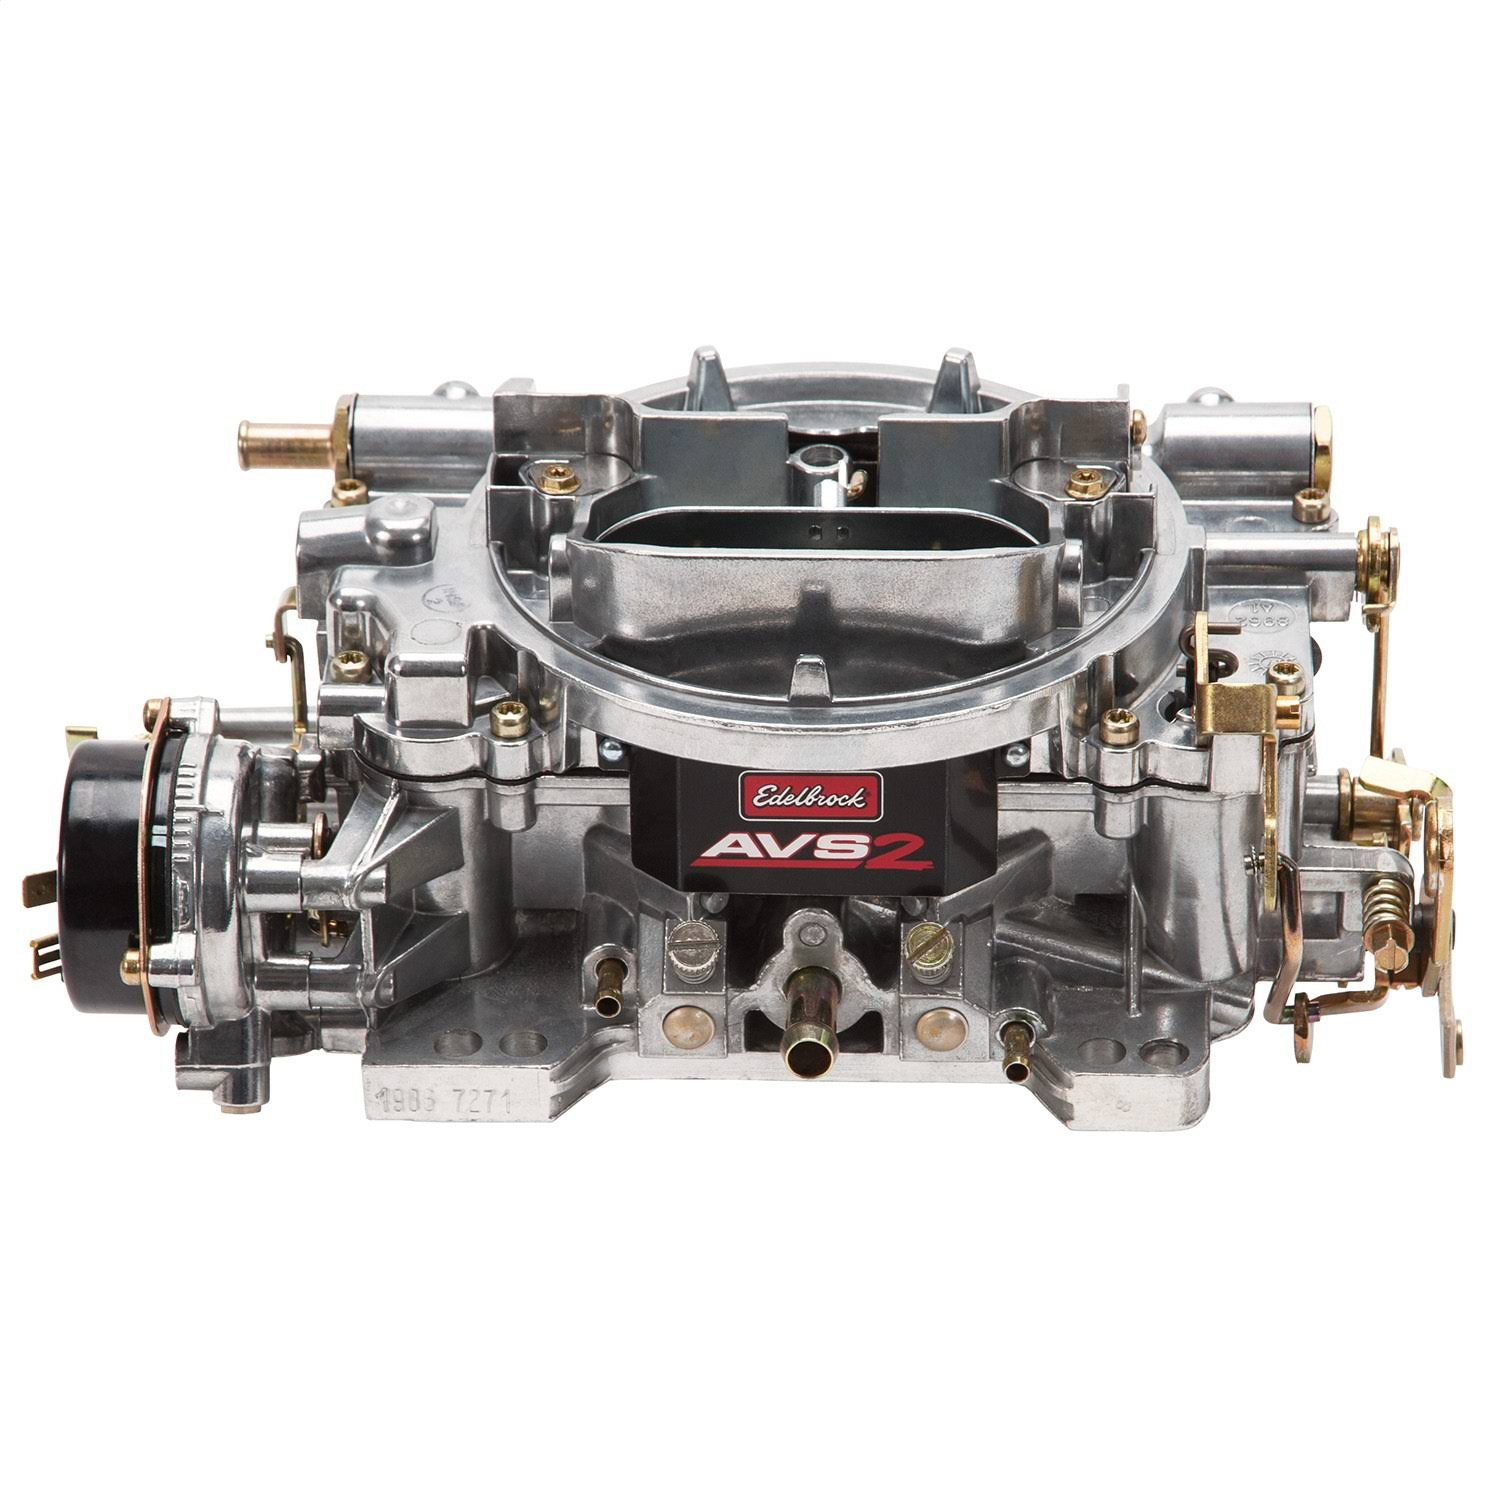 Edelbrock 1906 AVS2 Series Carburetor